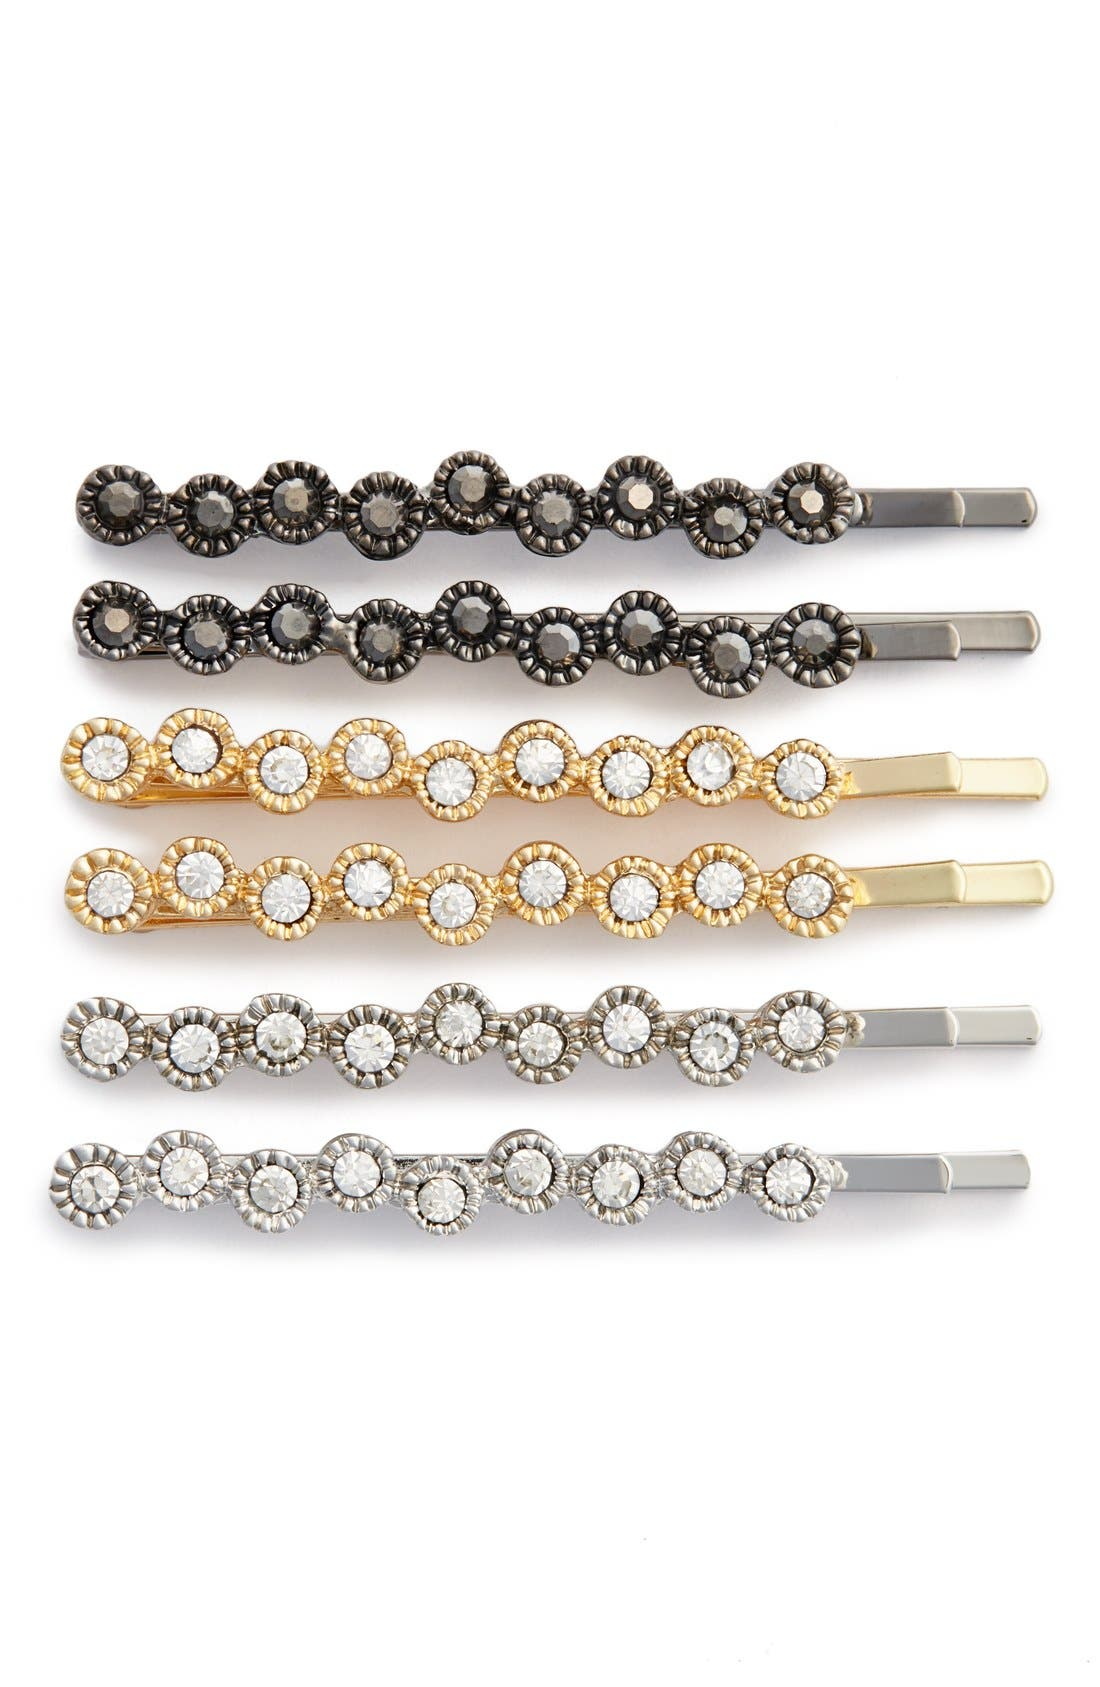 'Sparkle' Bobby Pins,                         Main,                         color, Gold